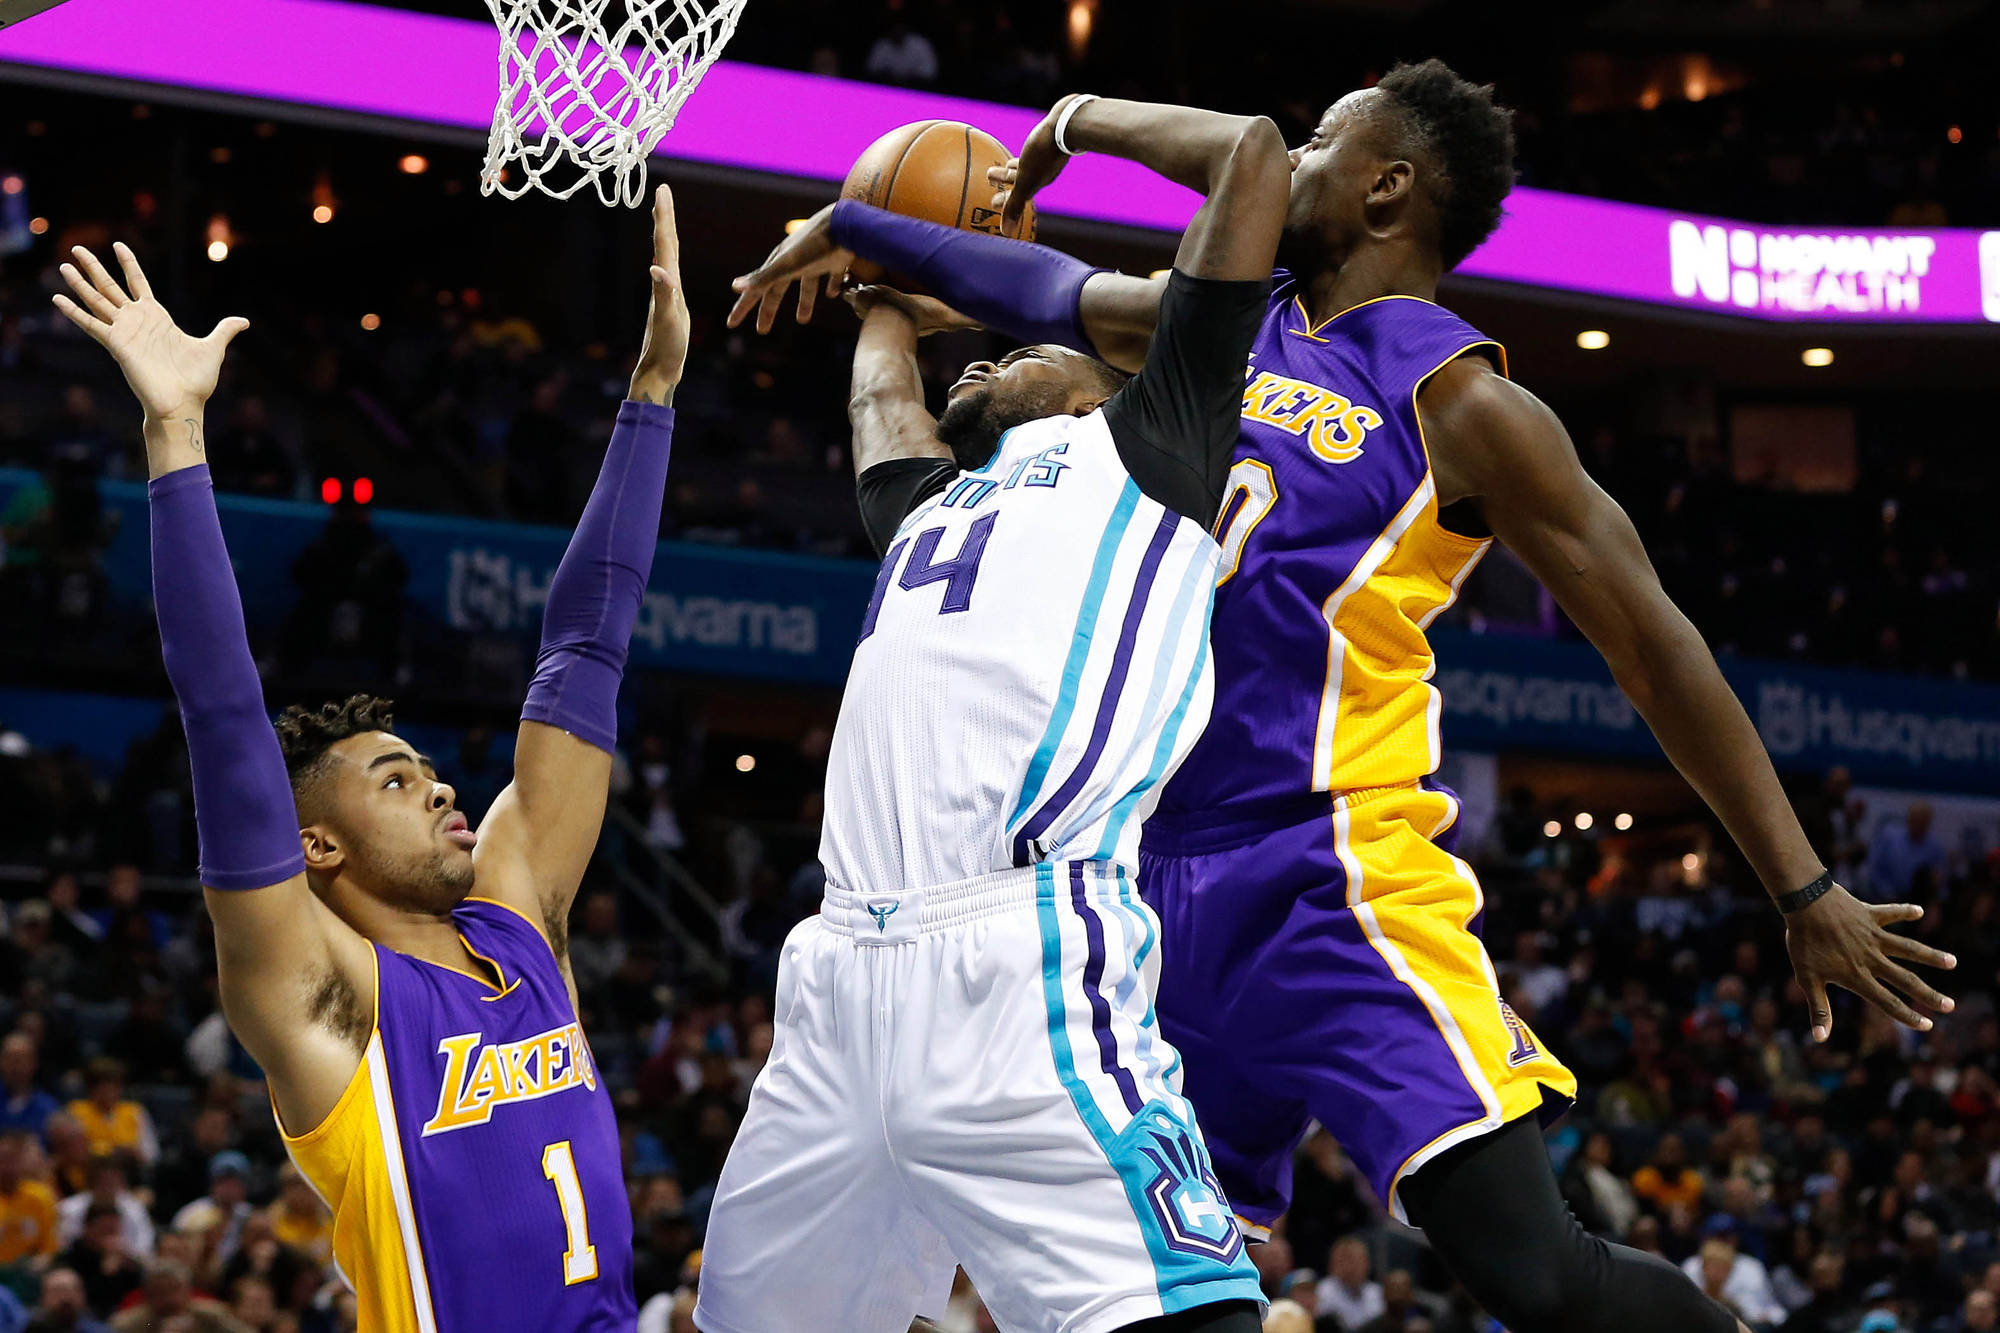 Should the Hornets be looking to trade MKG?